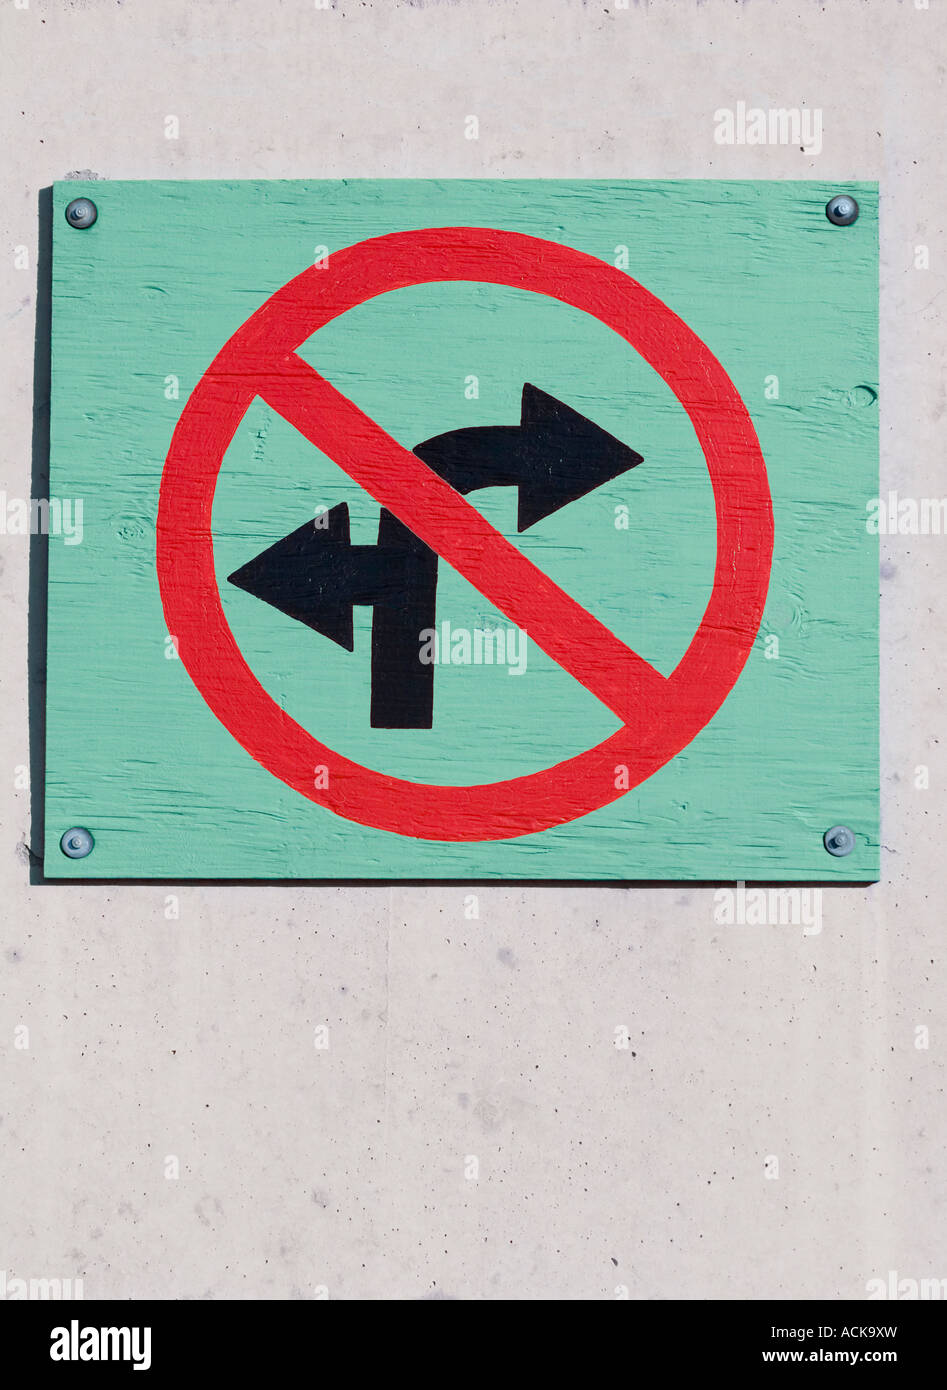 Wooden no left turn or right turn ahead sign Stock Photo